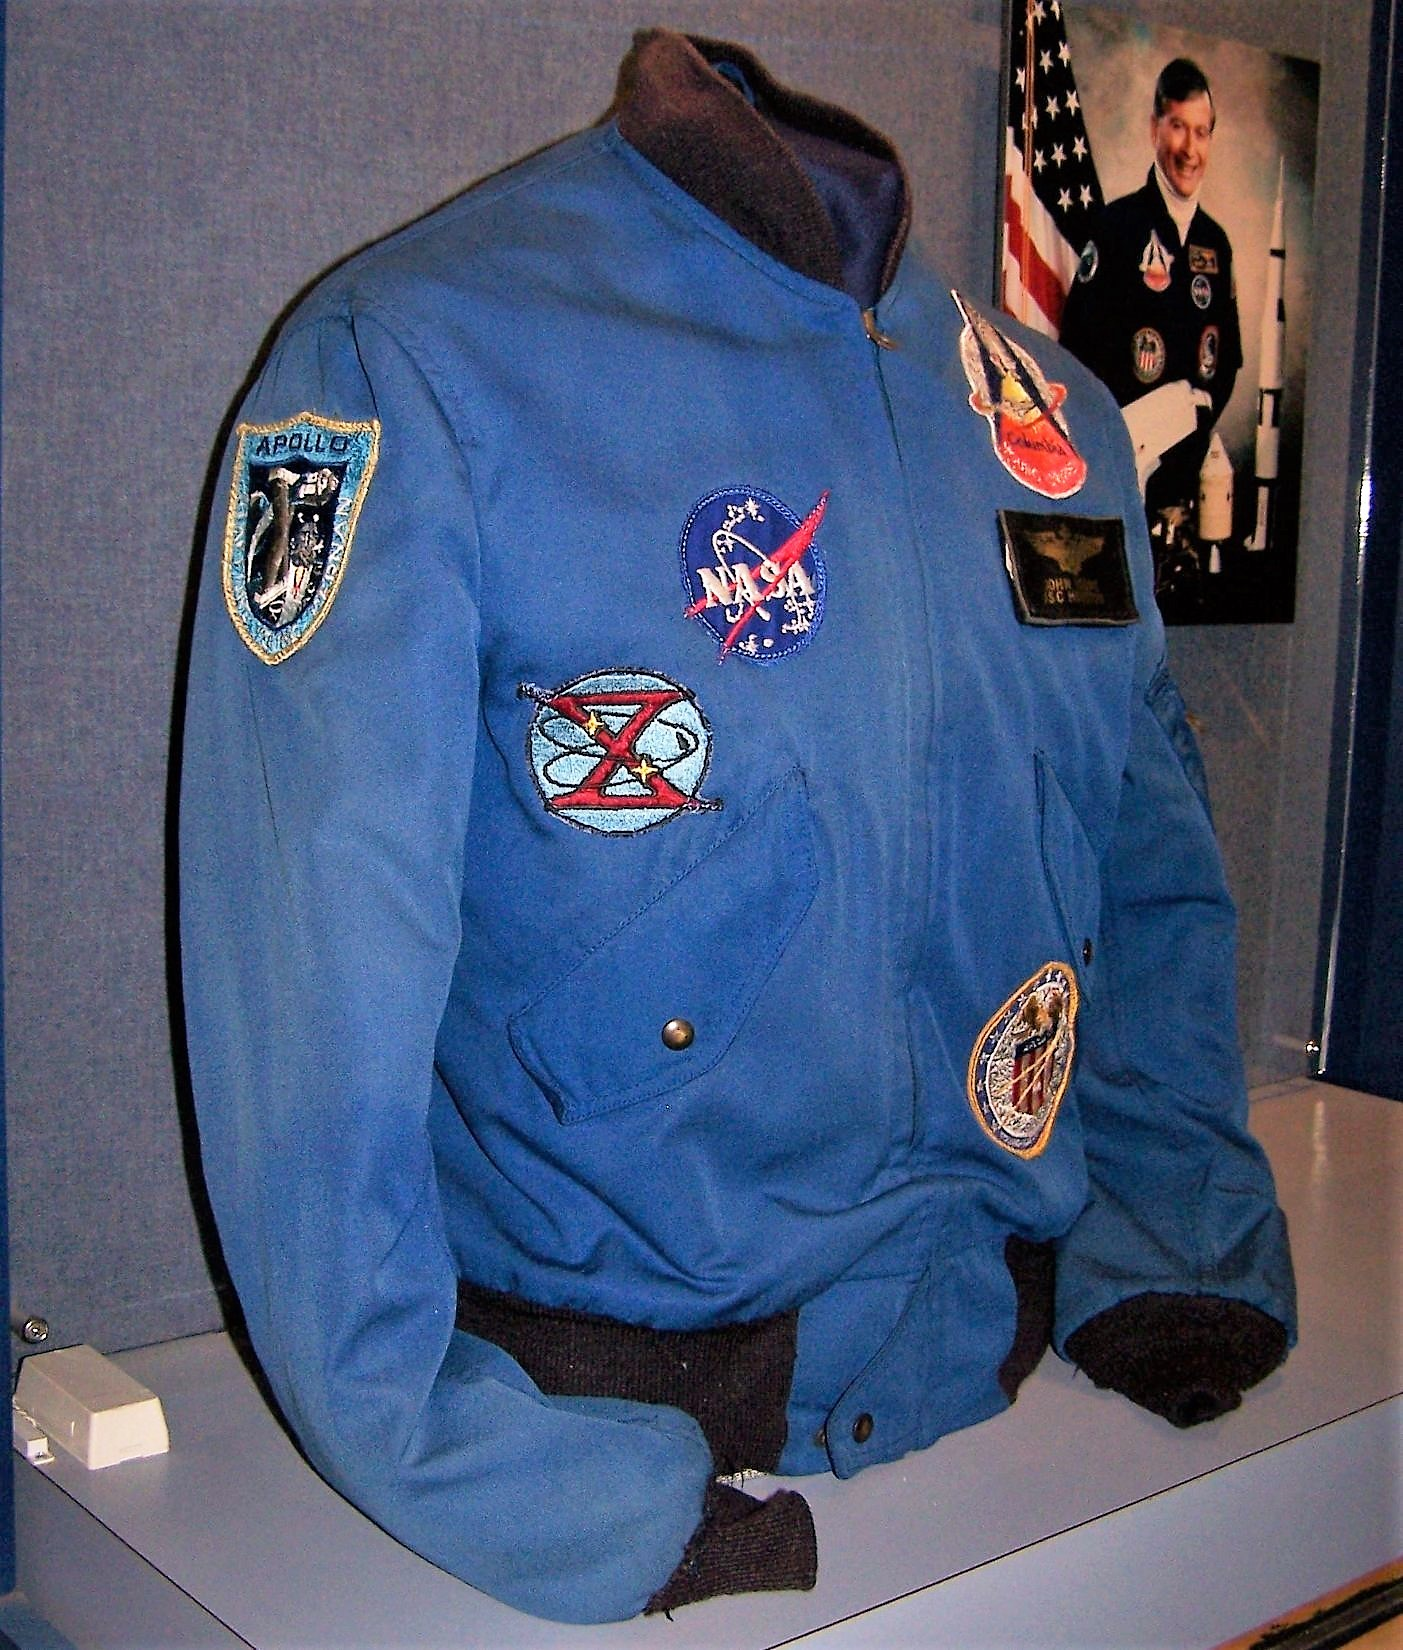 Artifacts from the former U.S. Astronaut Hall of Fame® recently found new homes in two stunning displays at the visitor complex, including John Young's Flight Jacket.